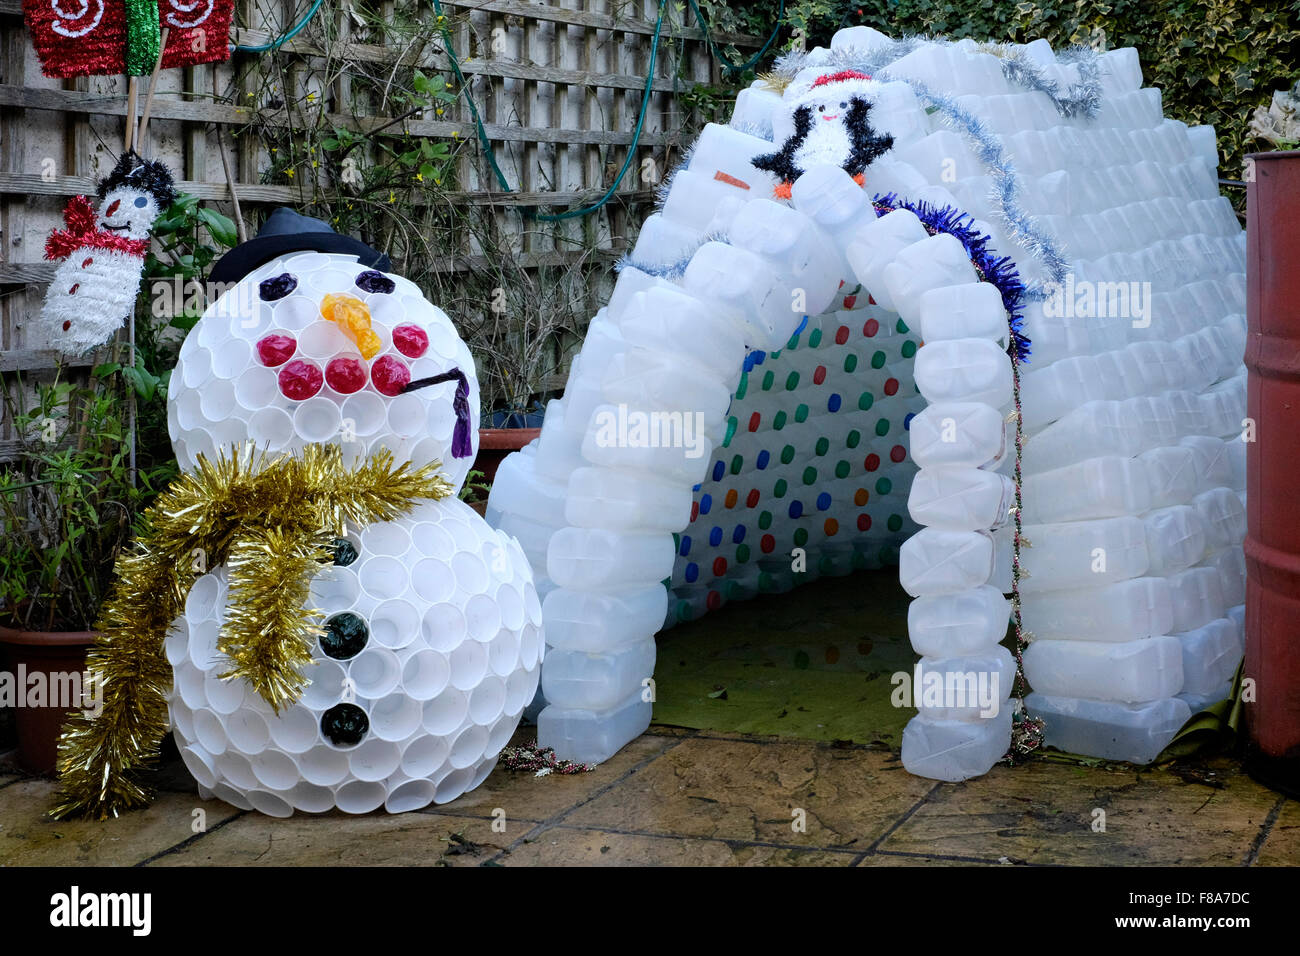 Christmas garden igloo and snowman decoration made from